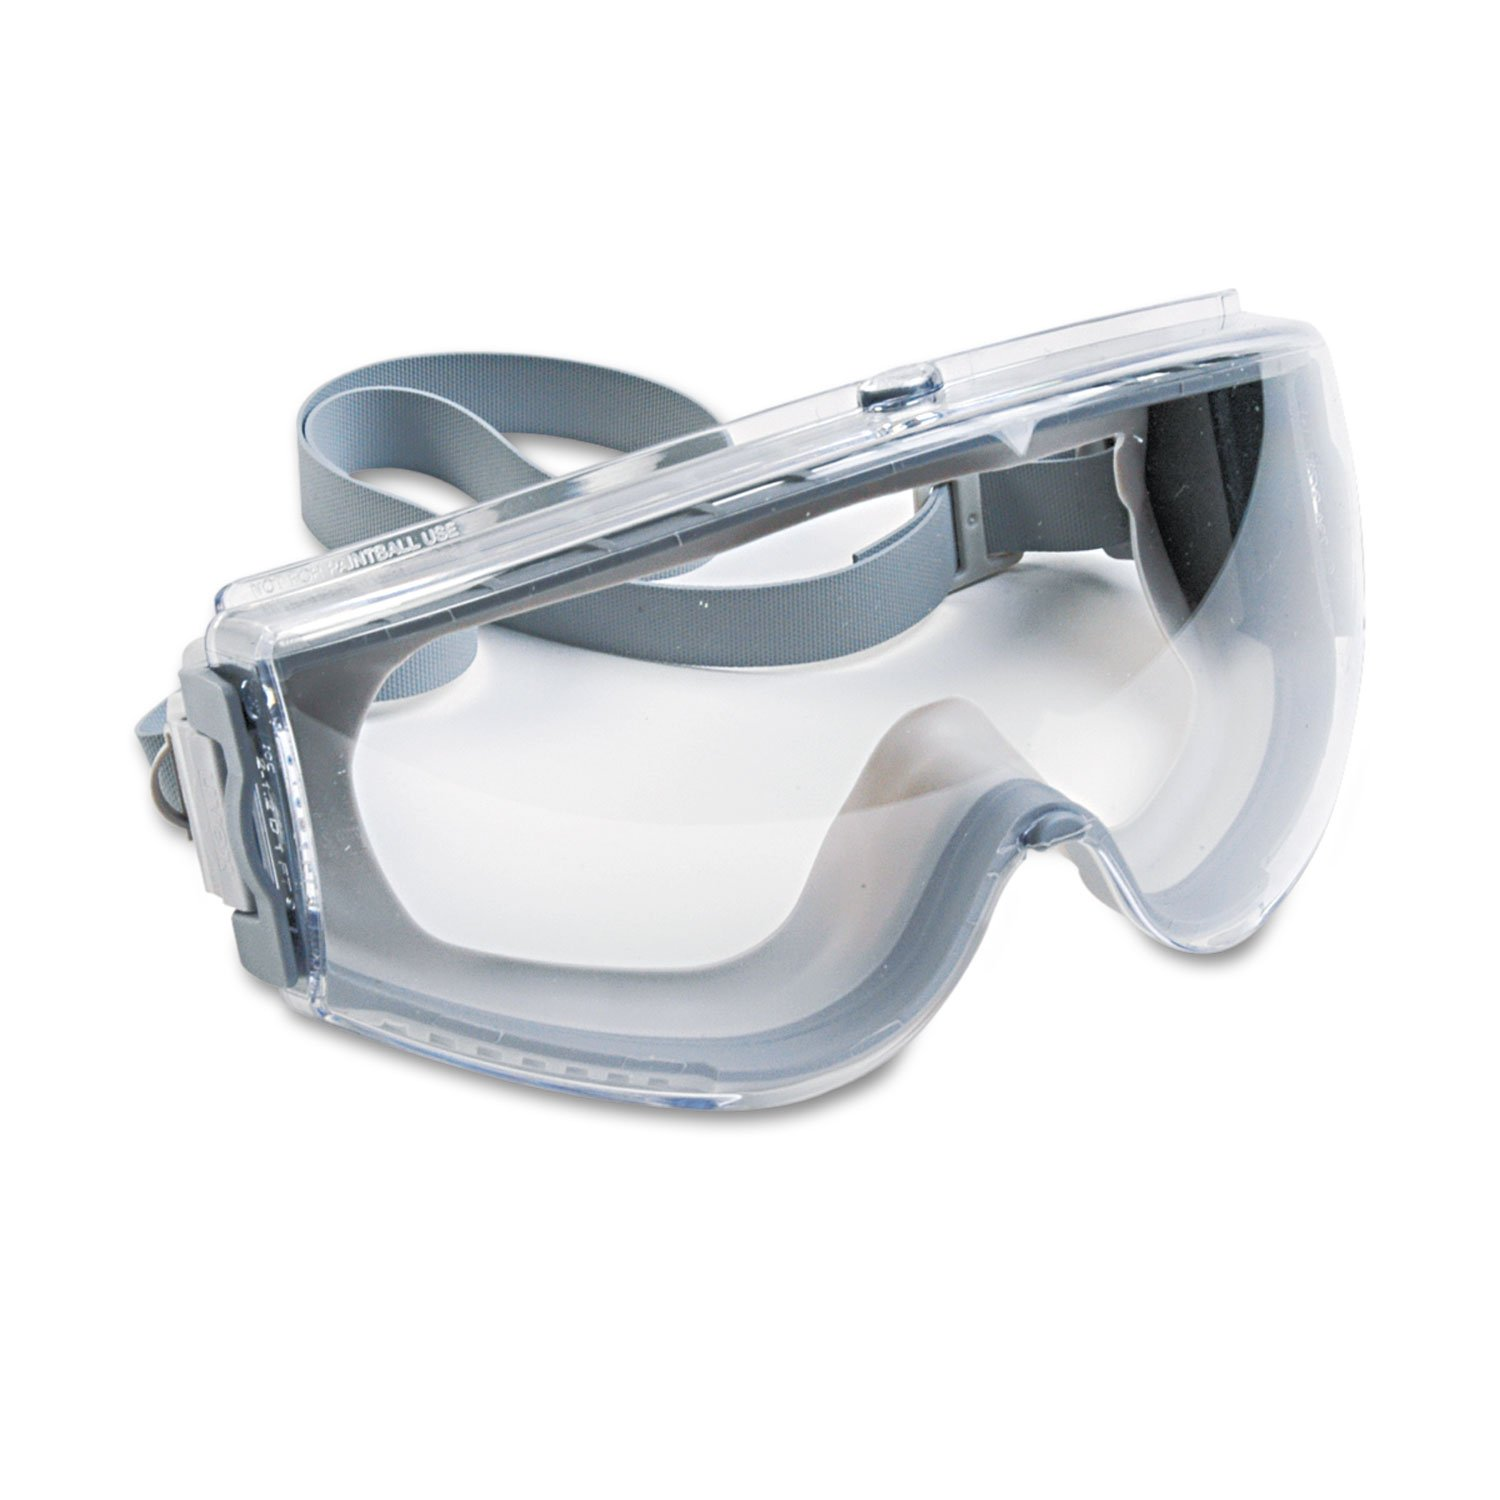 Uvex Stealth Safety Goggles with Uvextreme Anti-Fog Coating (S3960C) by Uvex